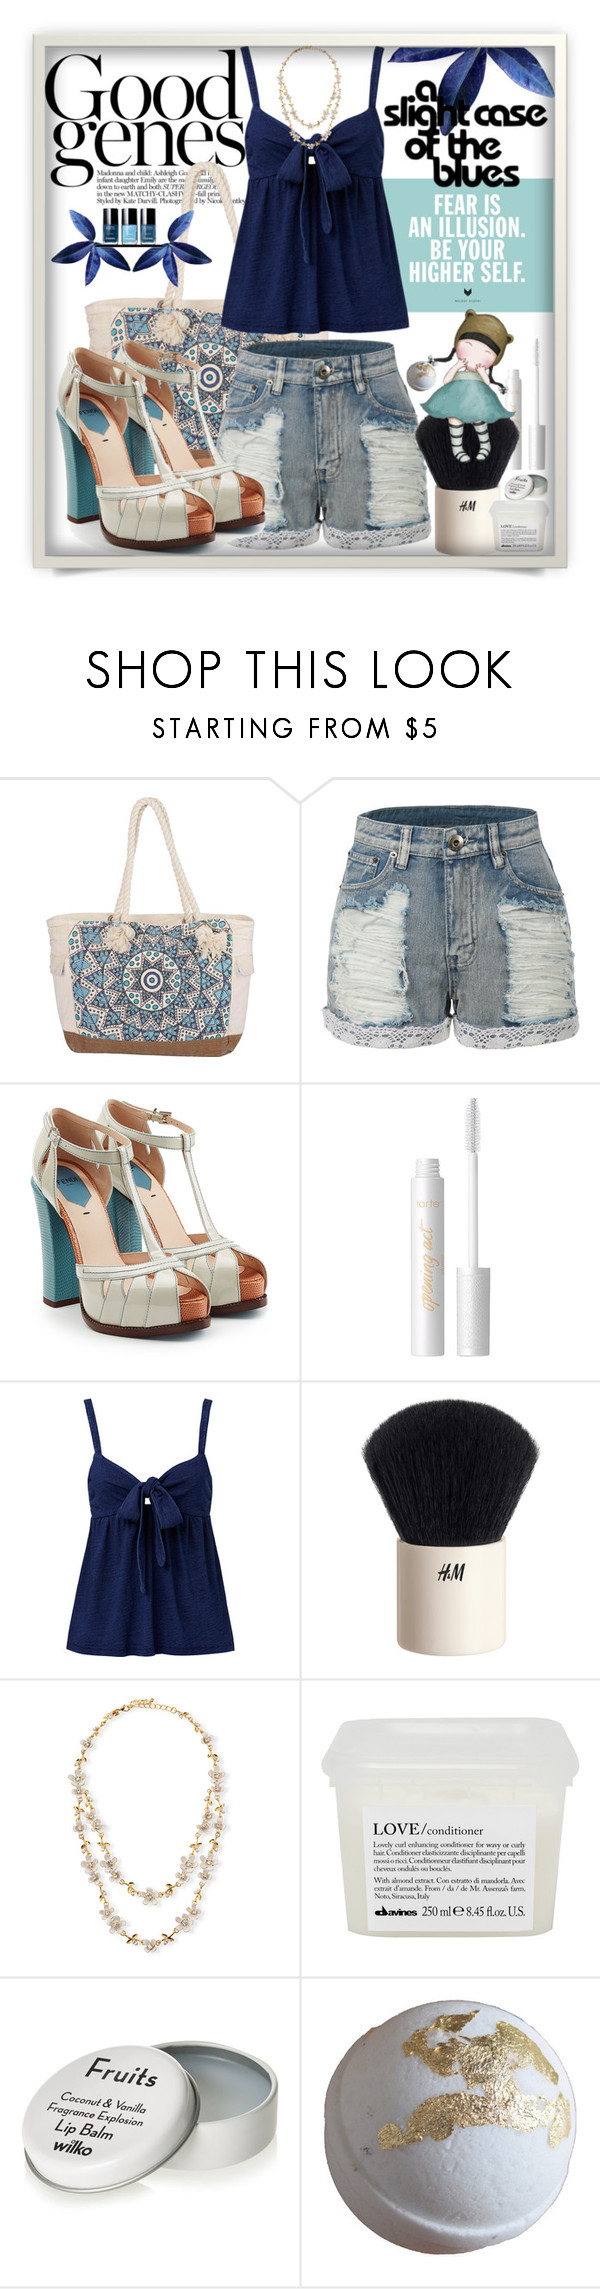 """""""A Slight Case of the Blues"""" by wuteringheights ❤ liked on Polyvore featuring Billabong, LE3NO, Fendi, tarte, H&M, Kate Spade and Davines"""